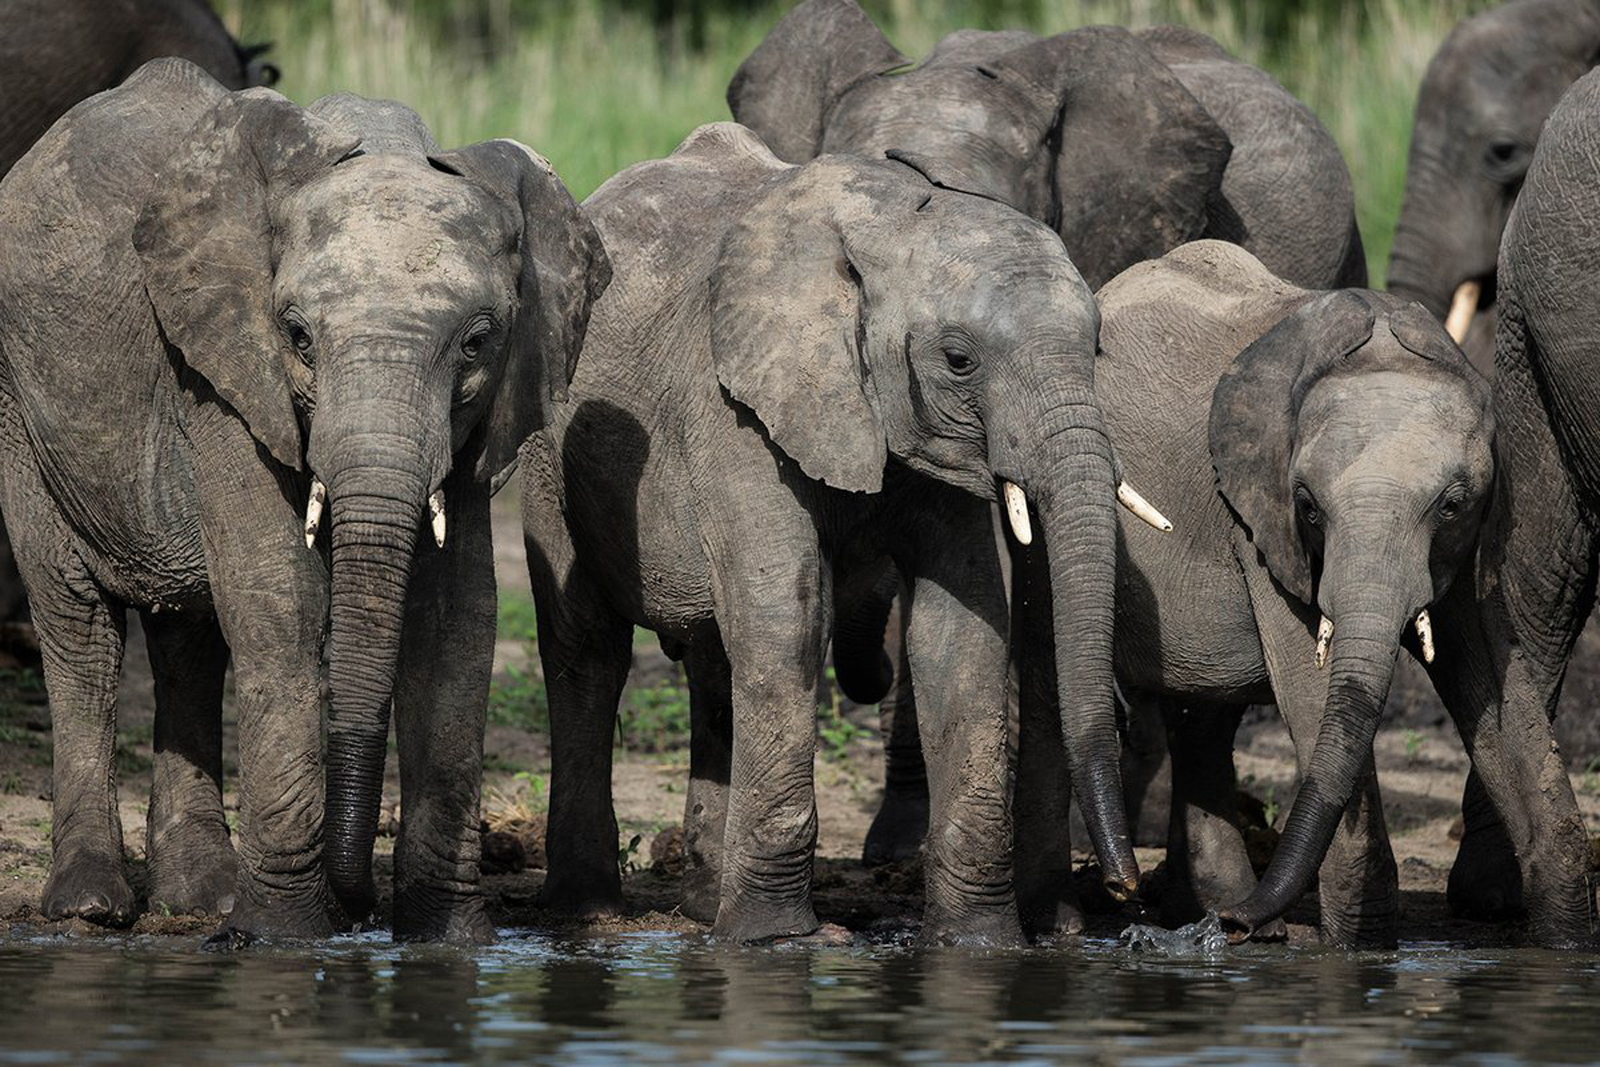 A herd of elephants take a drink in Kafue National Park in Zambia